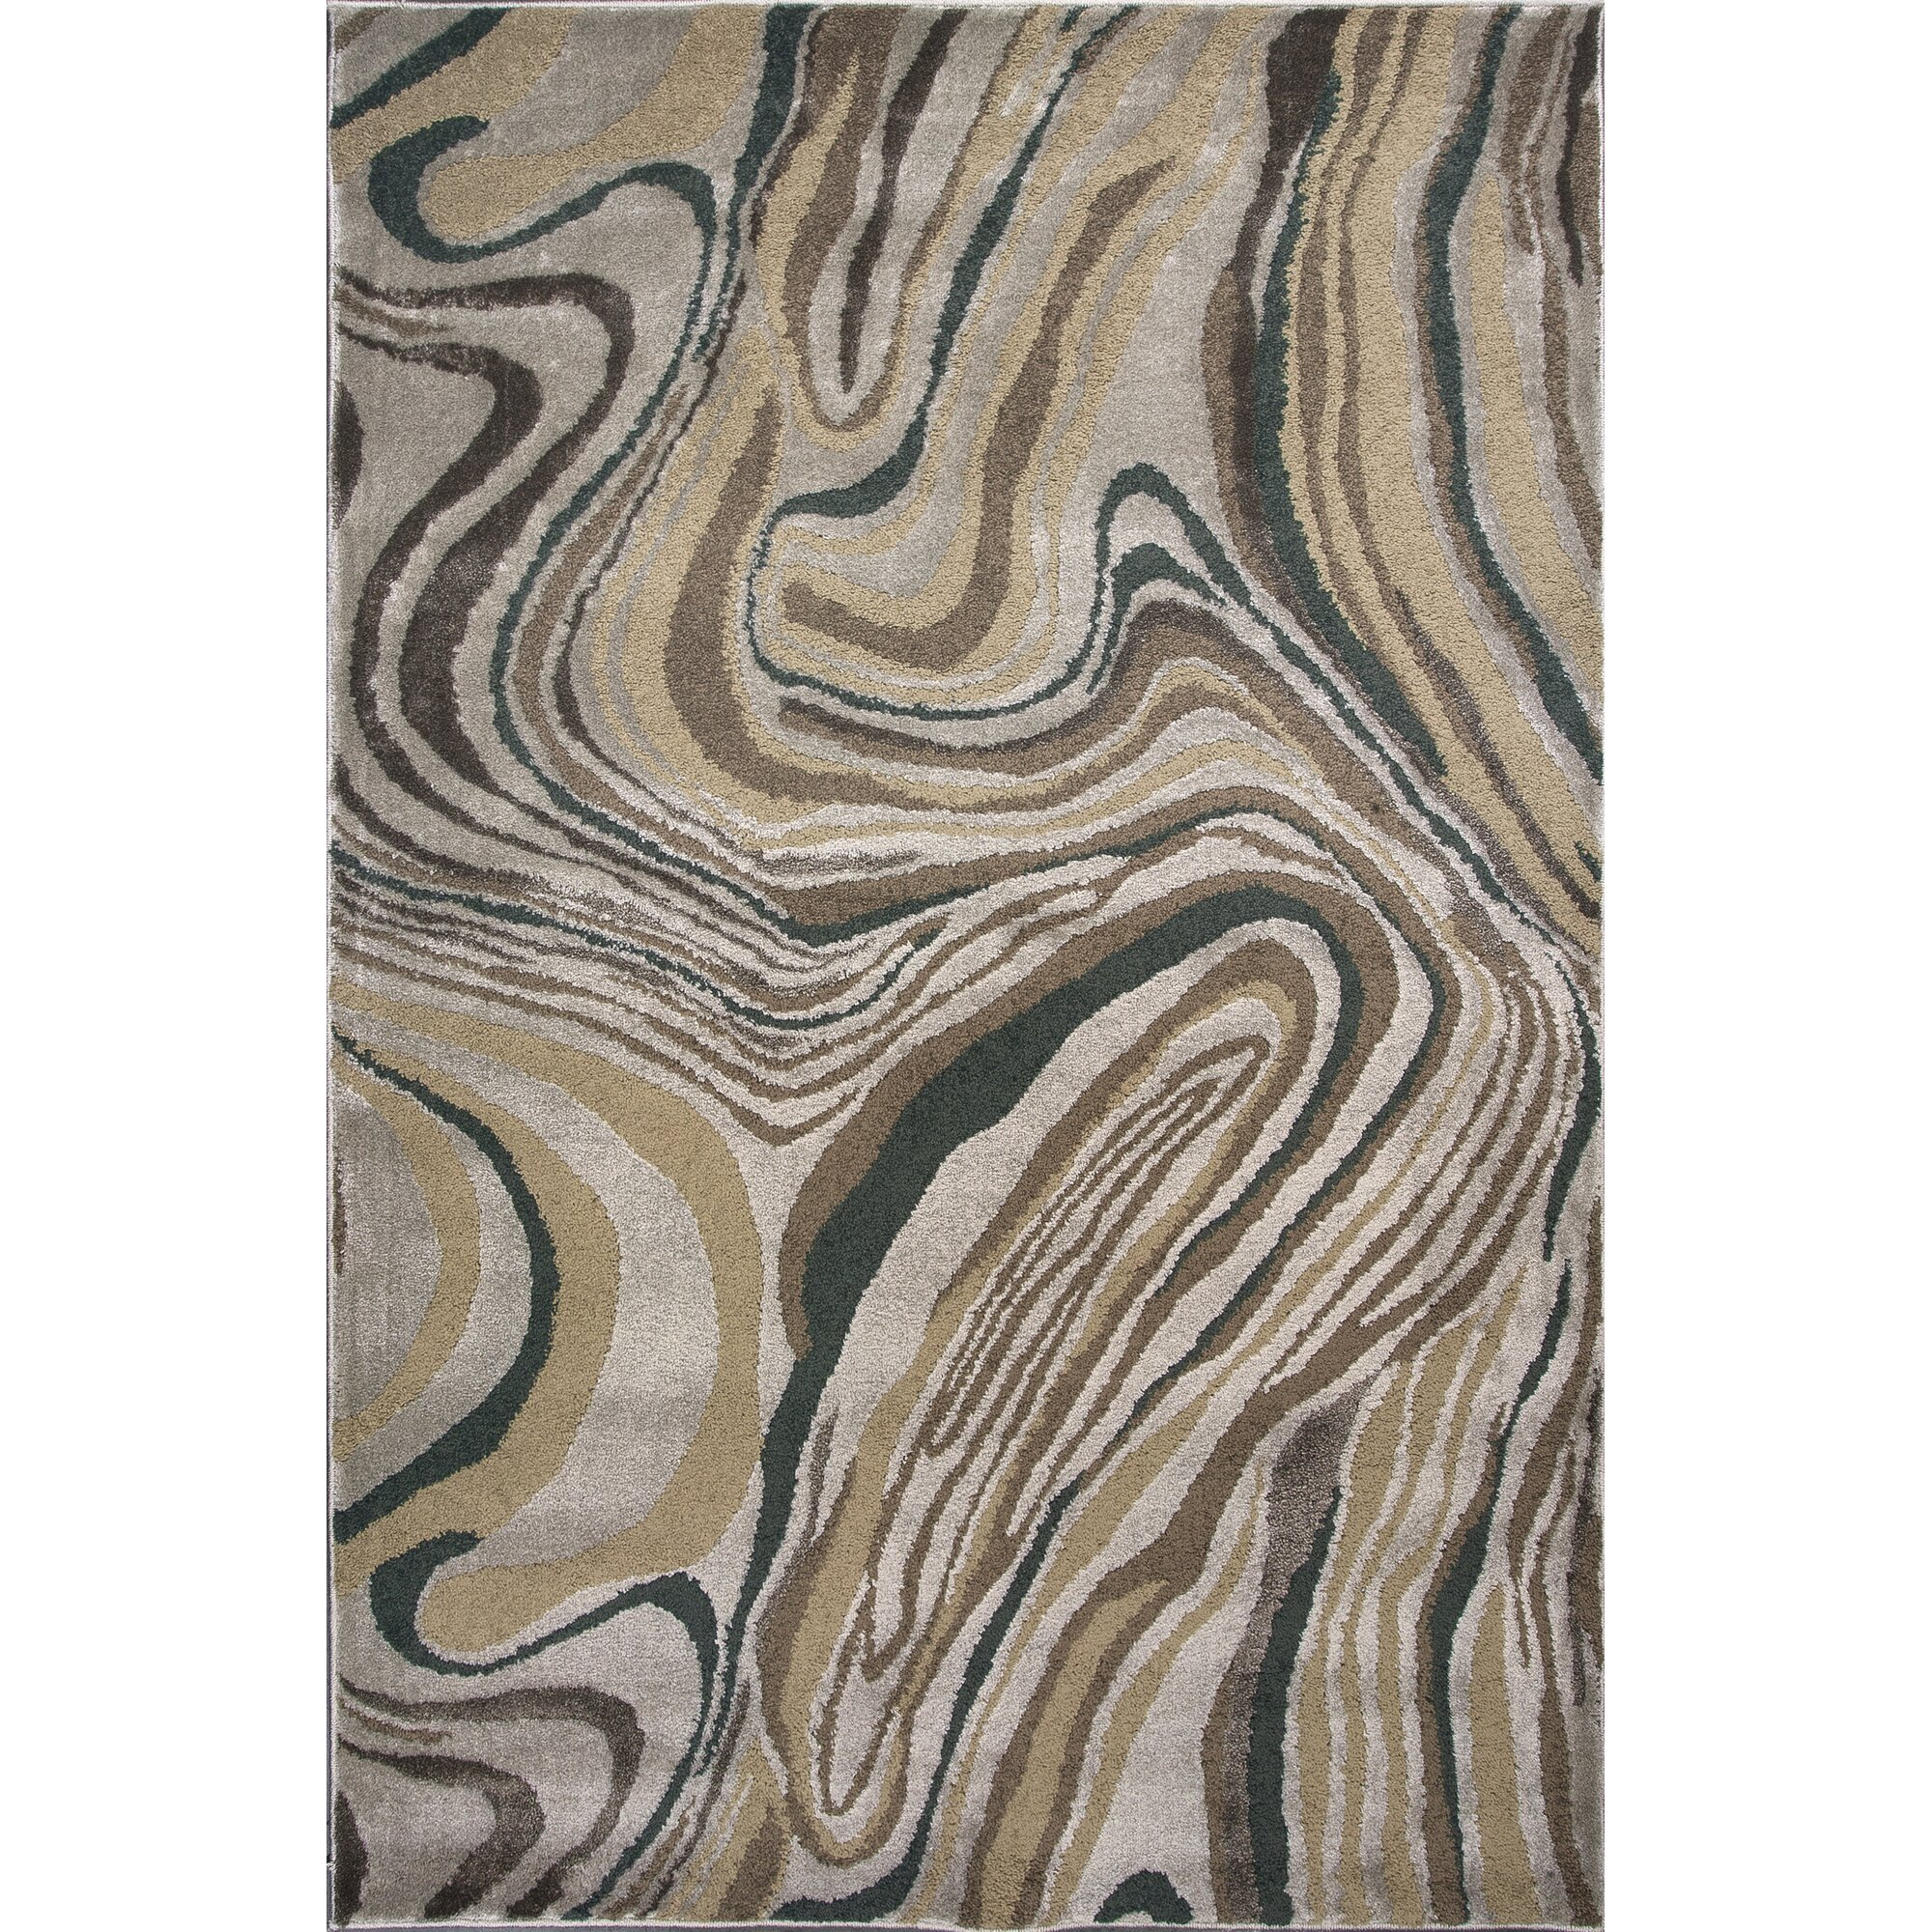 Timeless Silver Wood Grains Area Rug